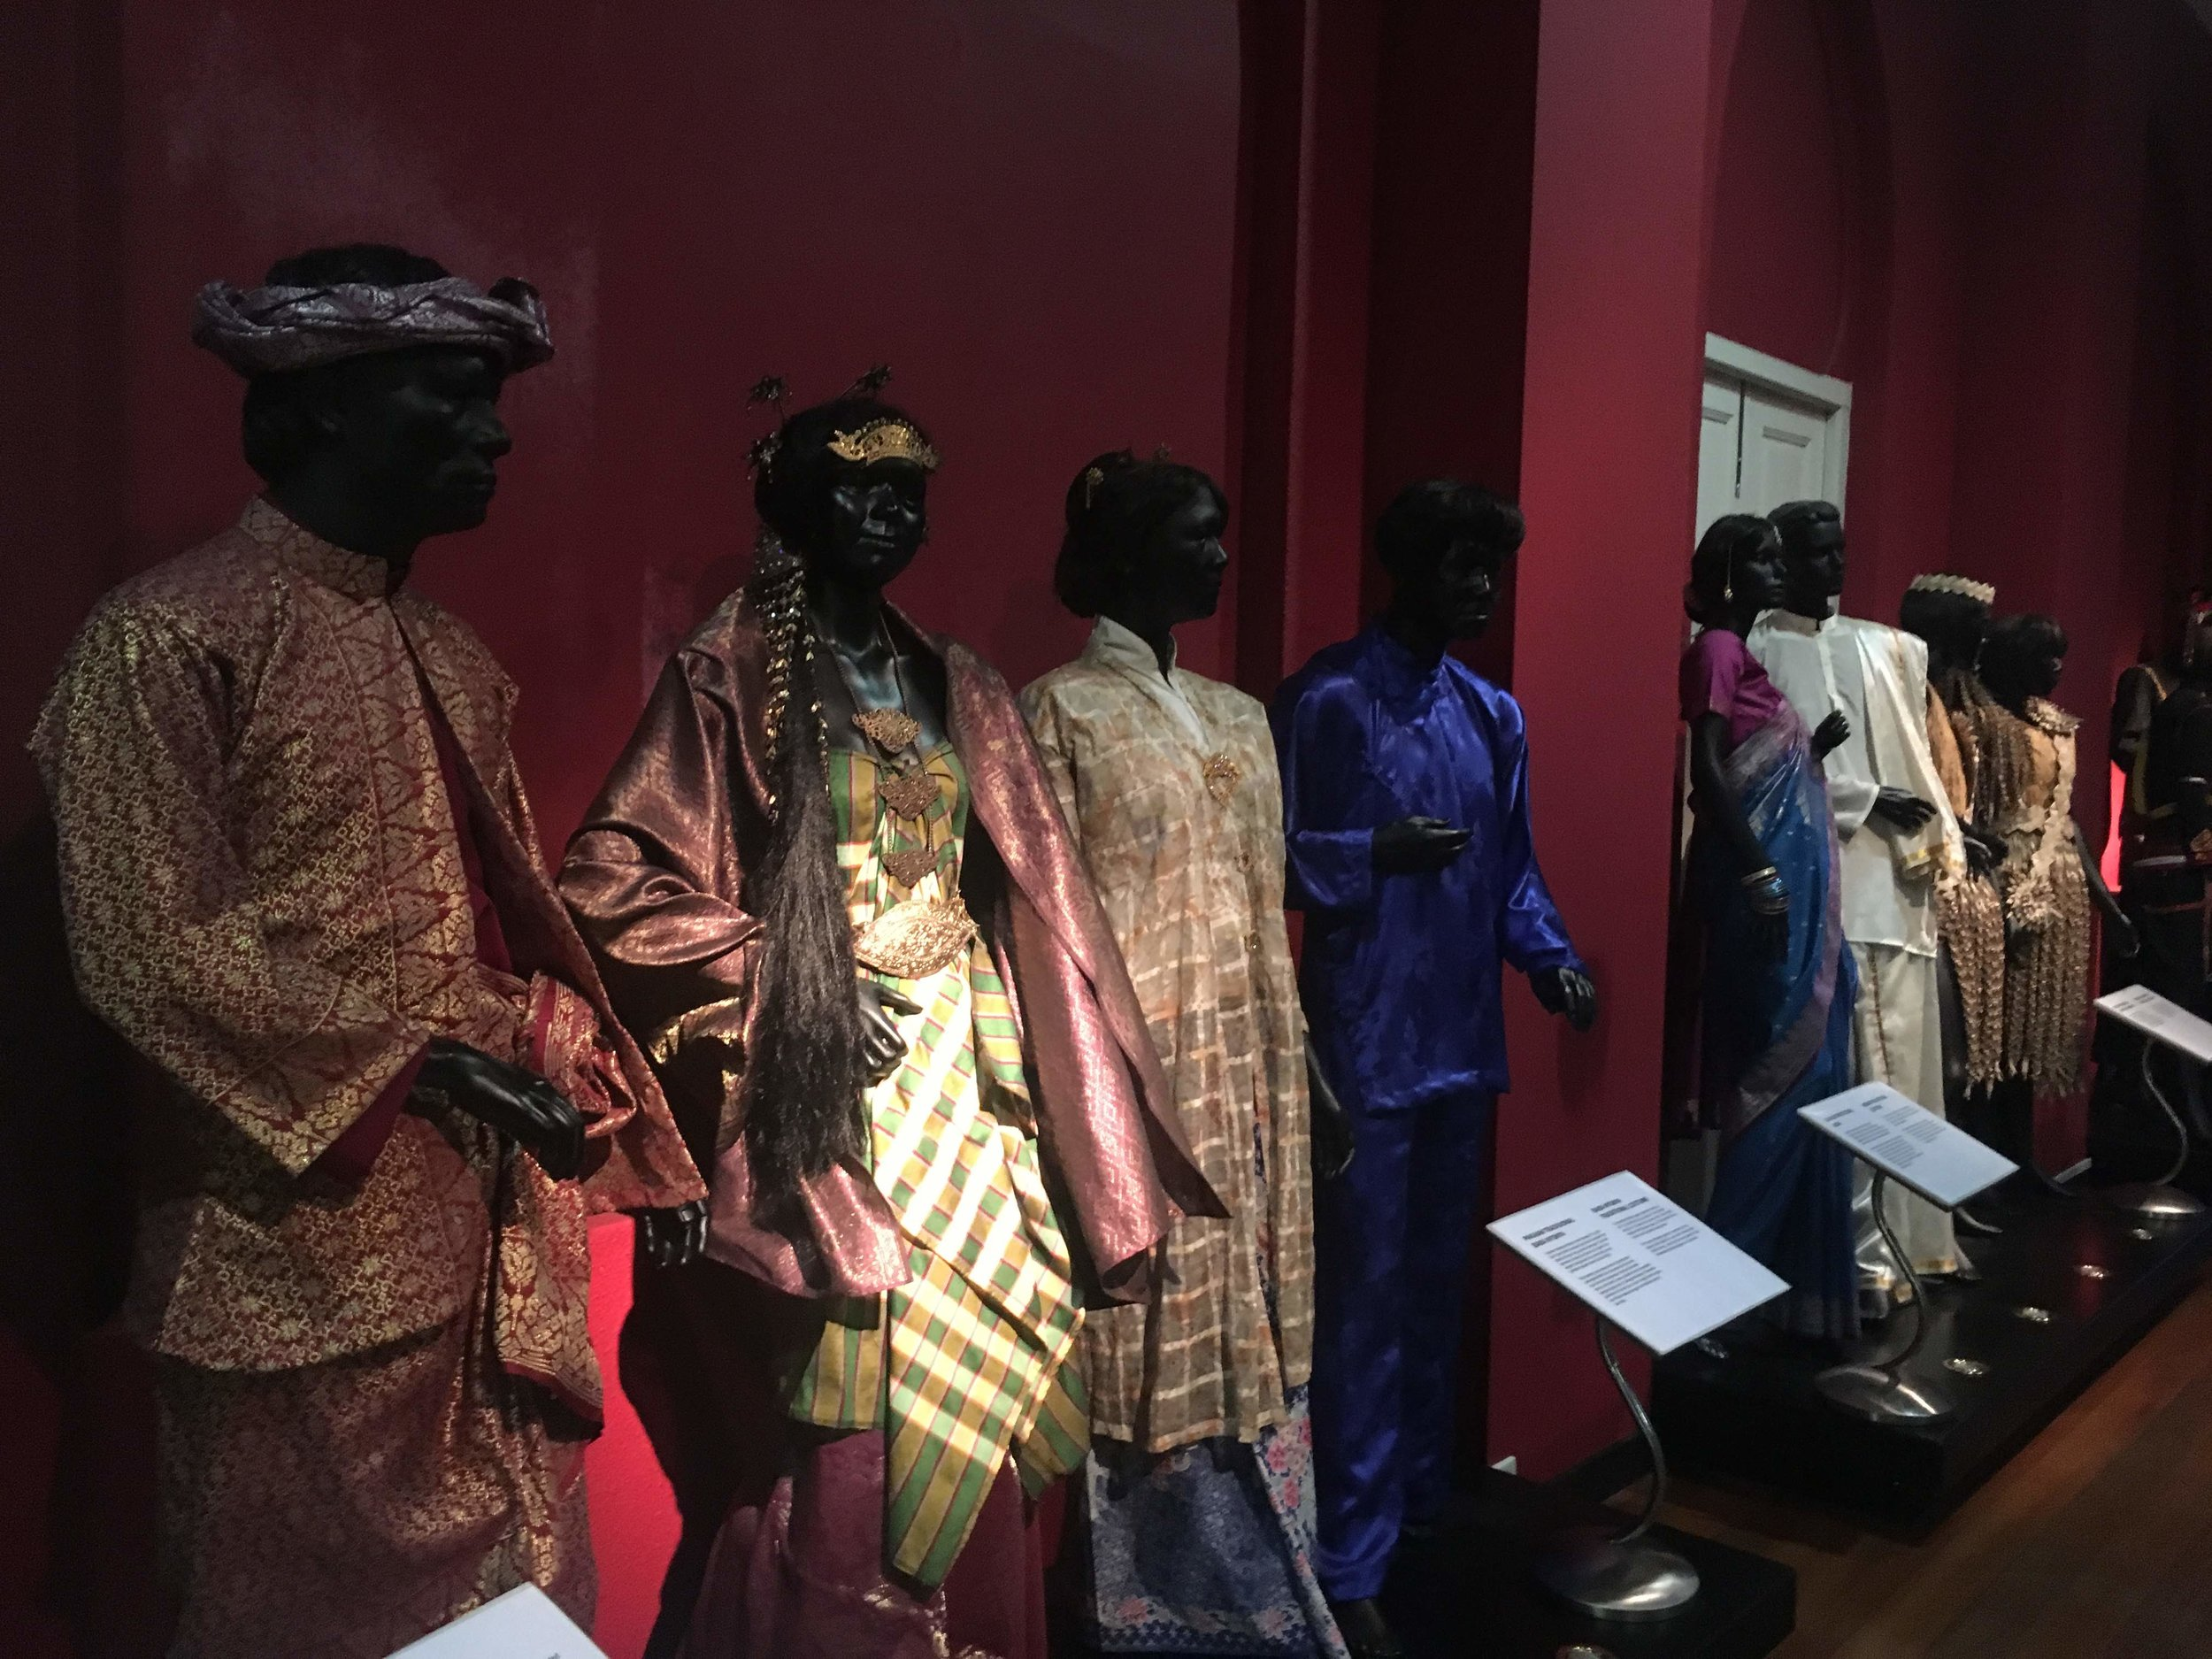 traditional outfits on display at Malaysia's National Textile Museum